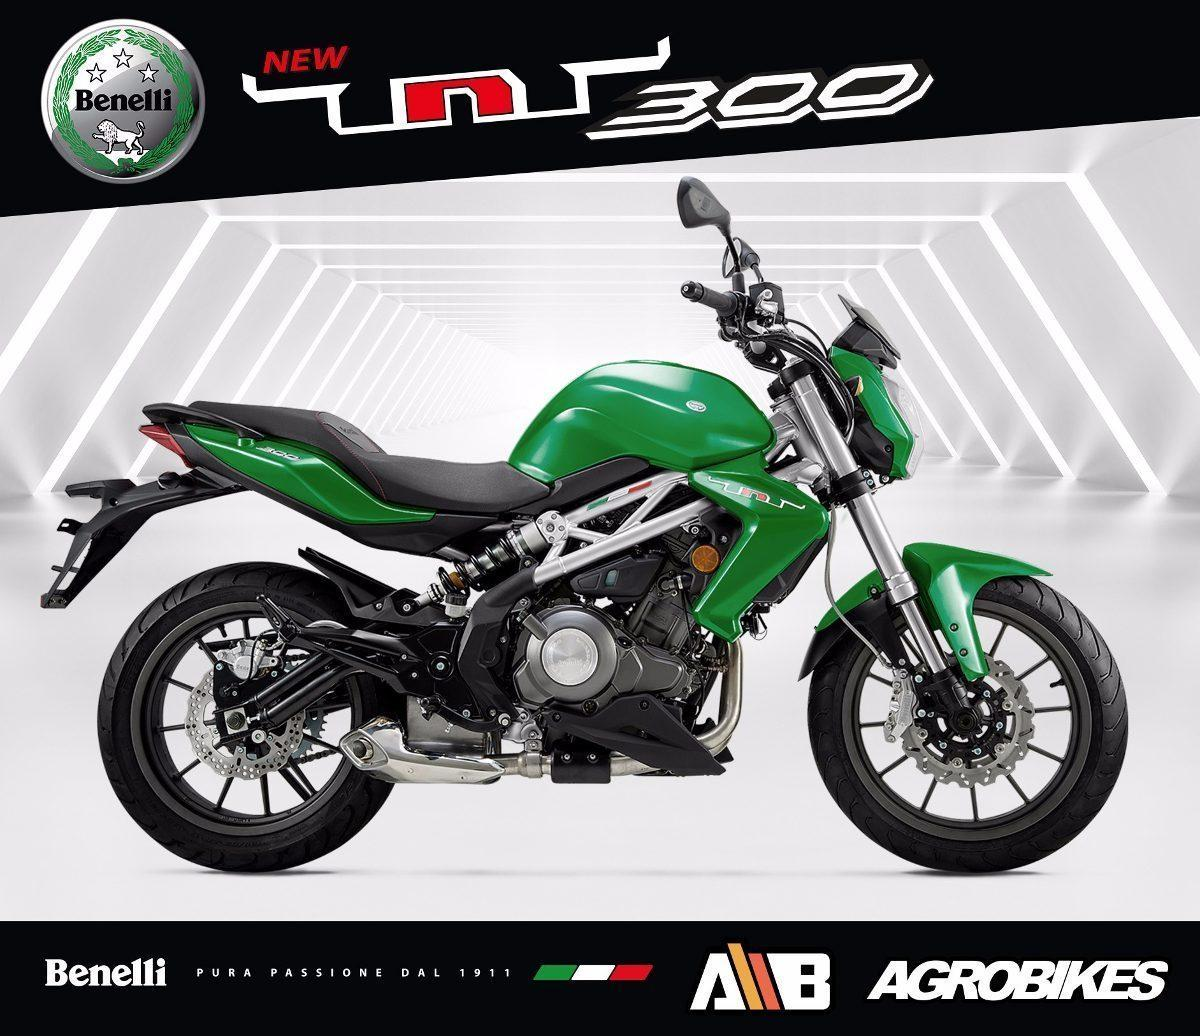 Benelli Tnt 300 Naked Agrobikes!